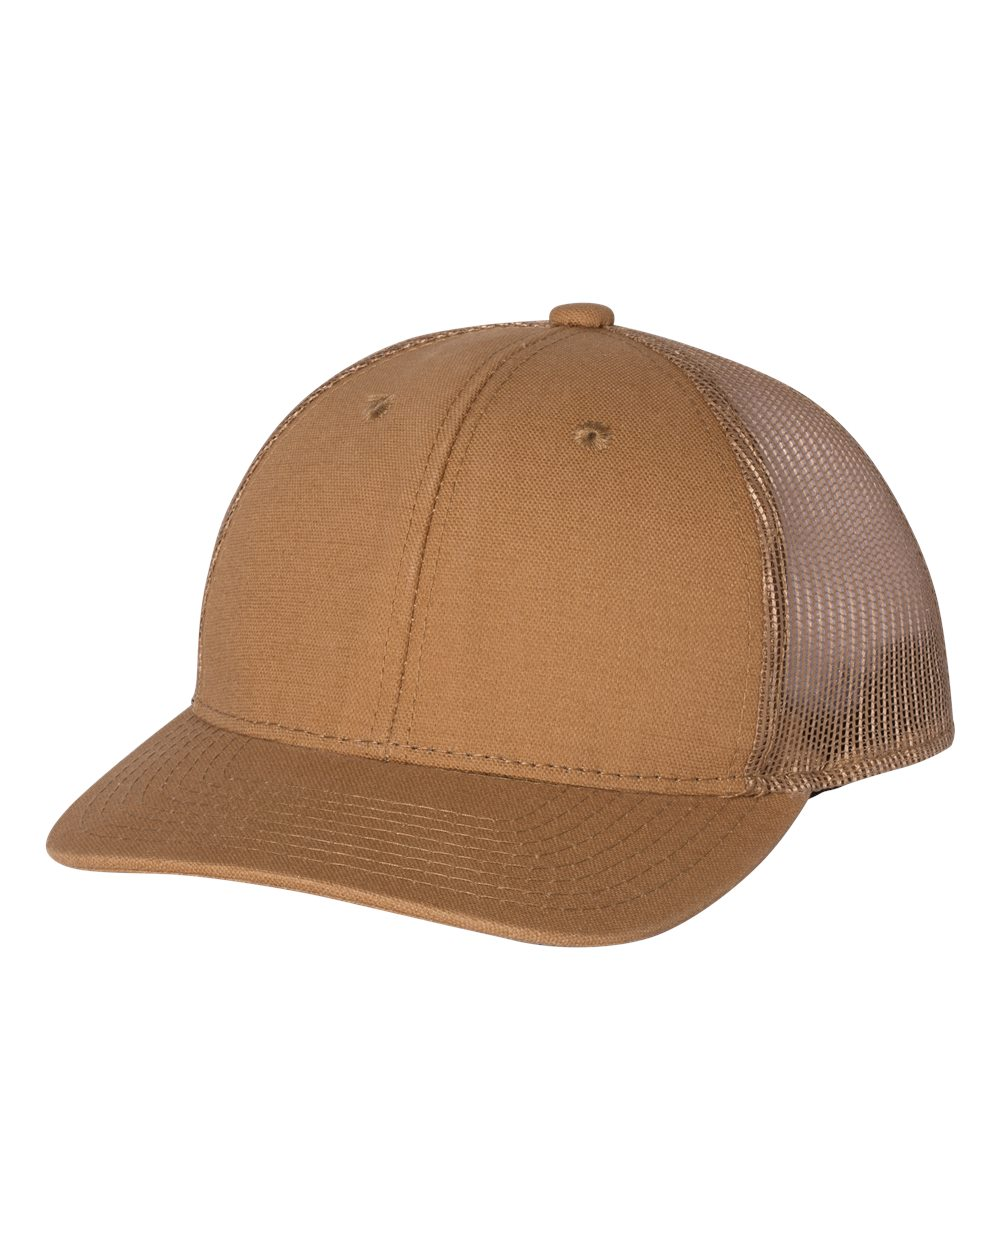 Outdoor Cap DUK800M - Mesh Back Cap